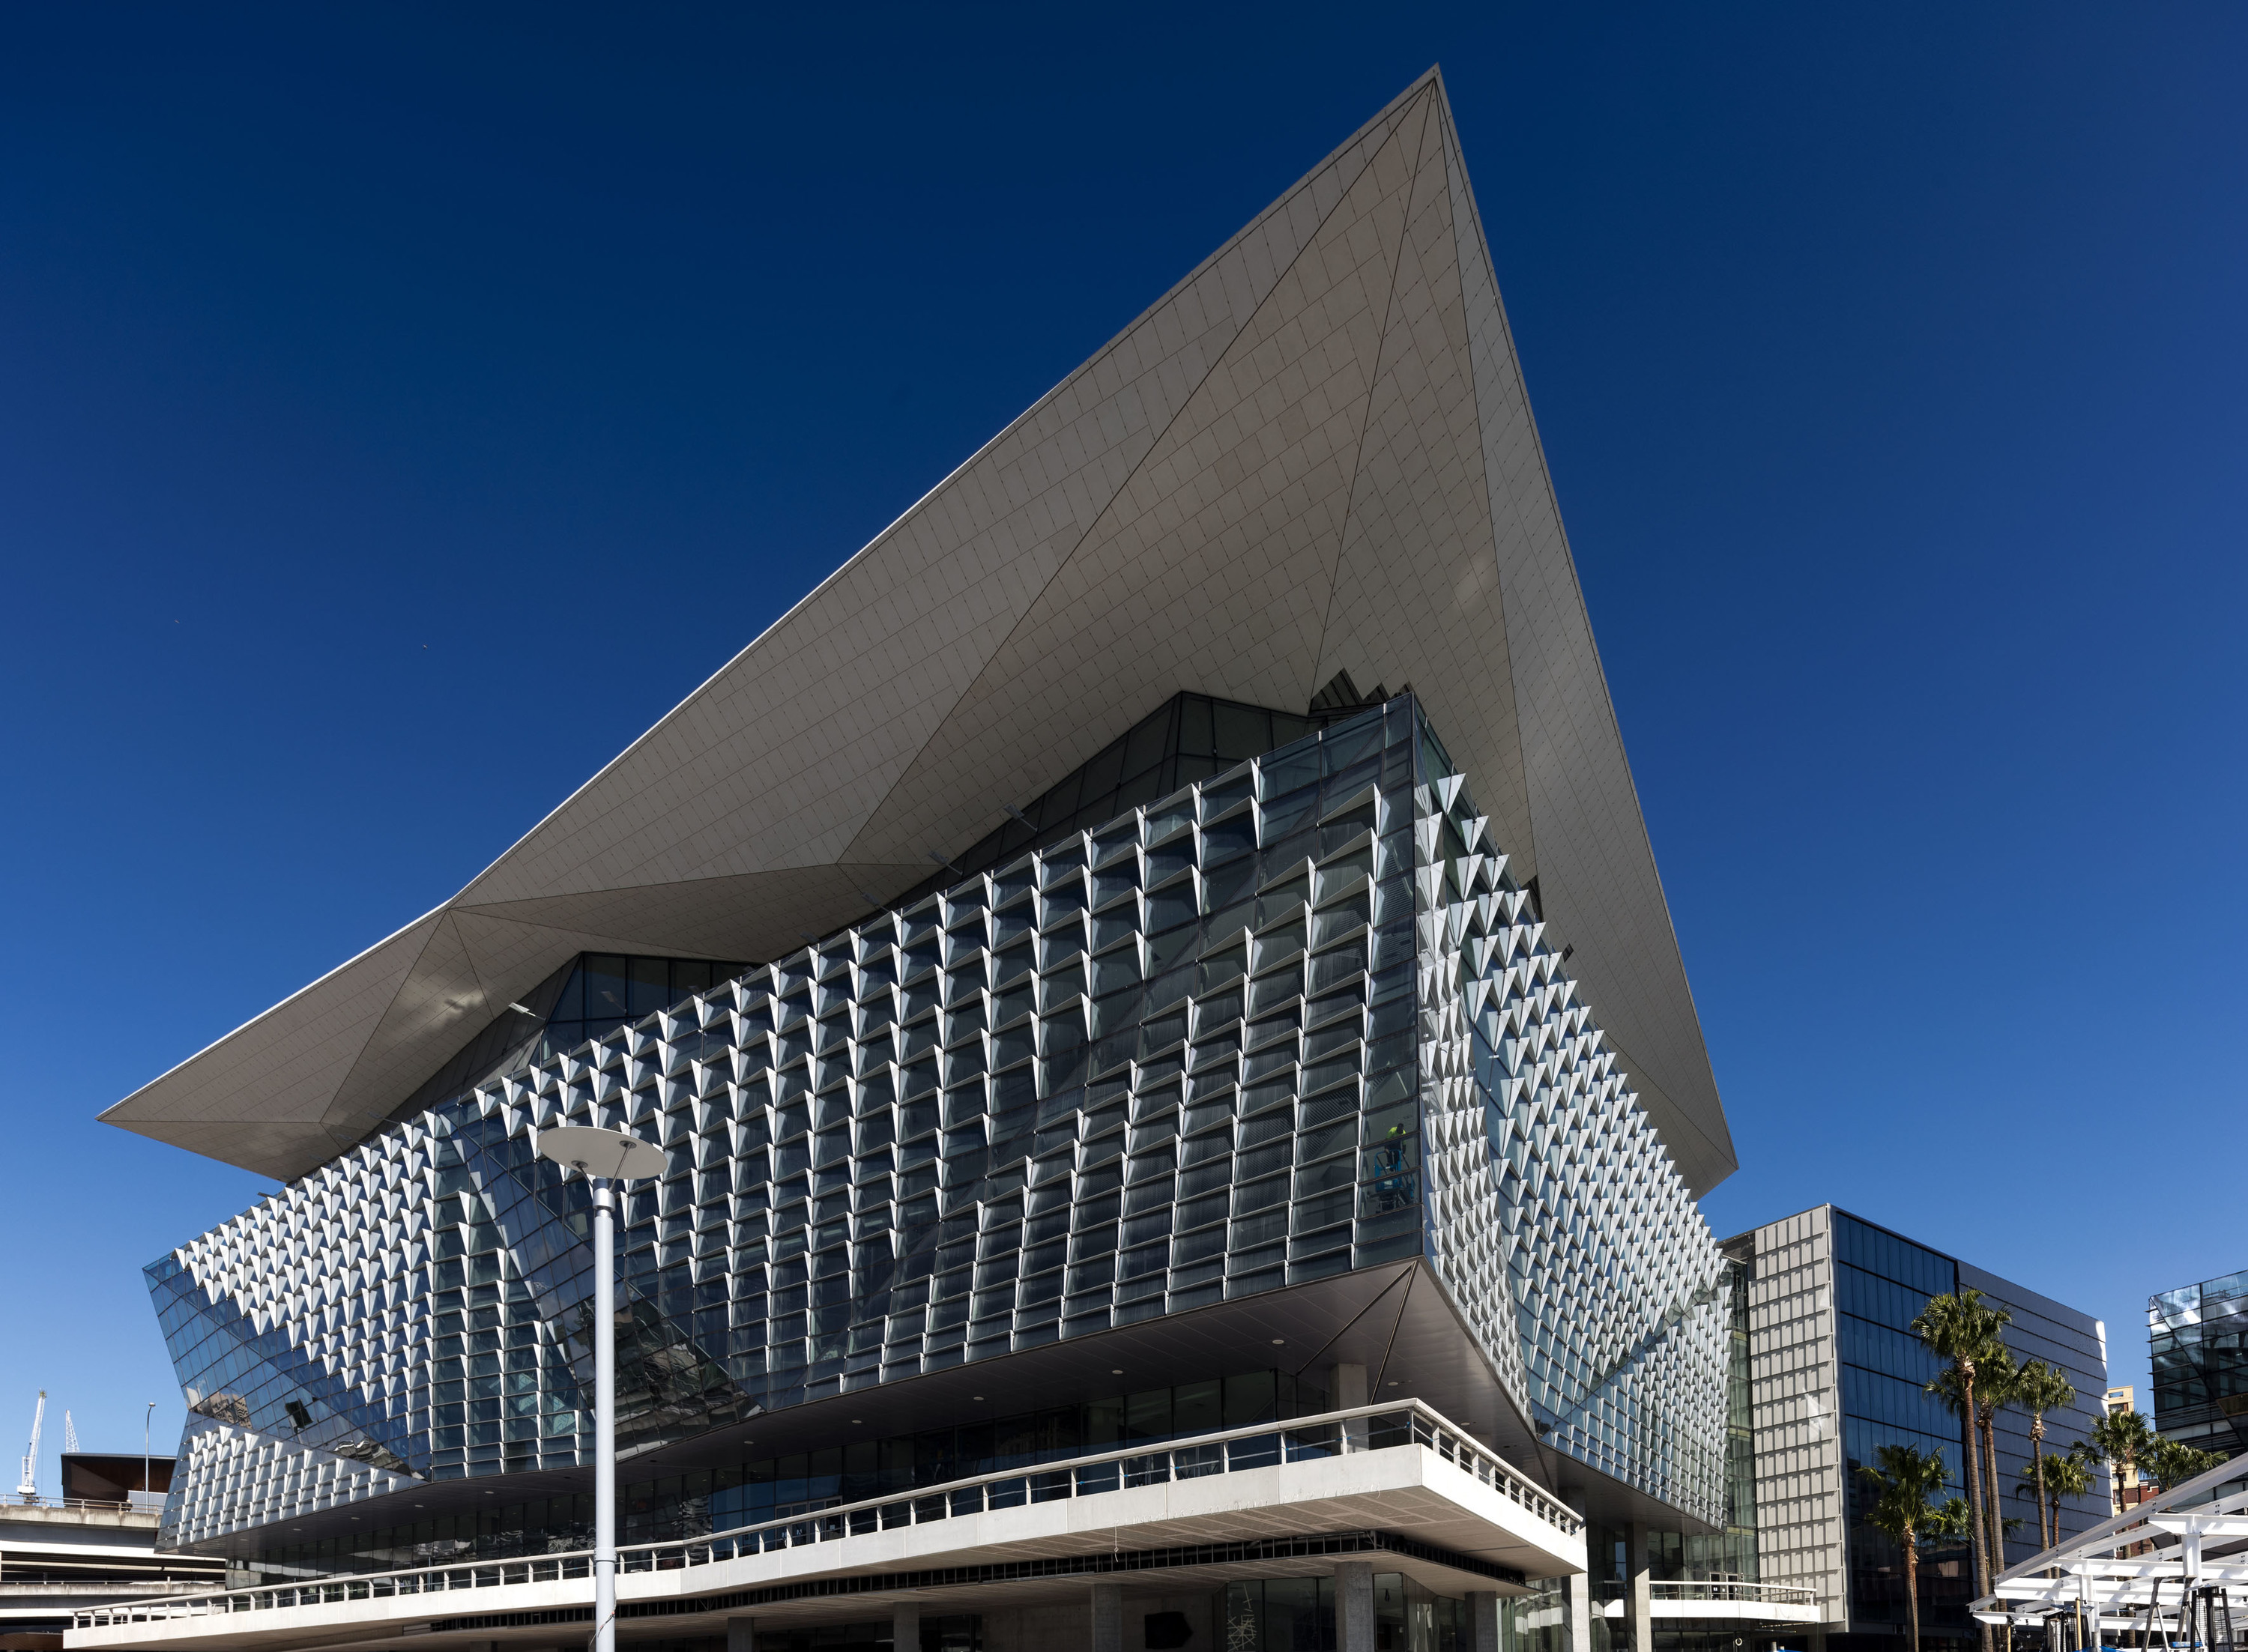 Be one of the first people inside the new ICC building in Darling Harbour